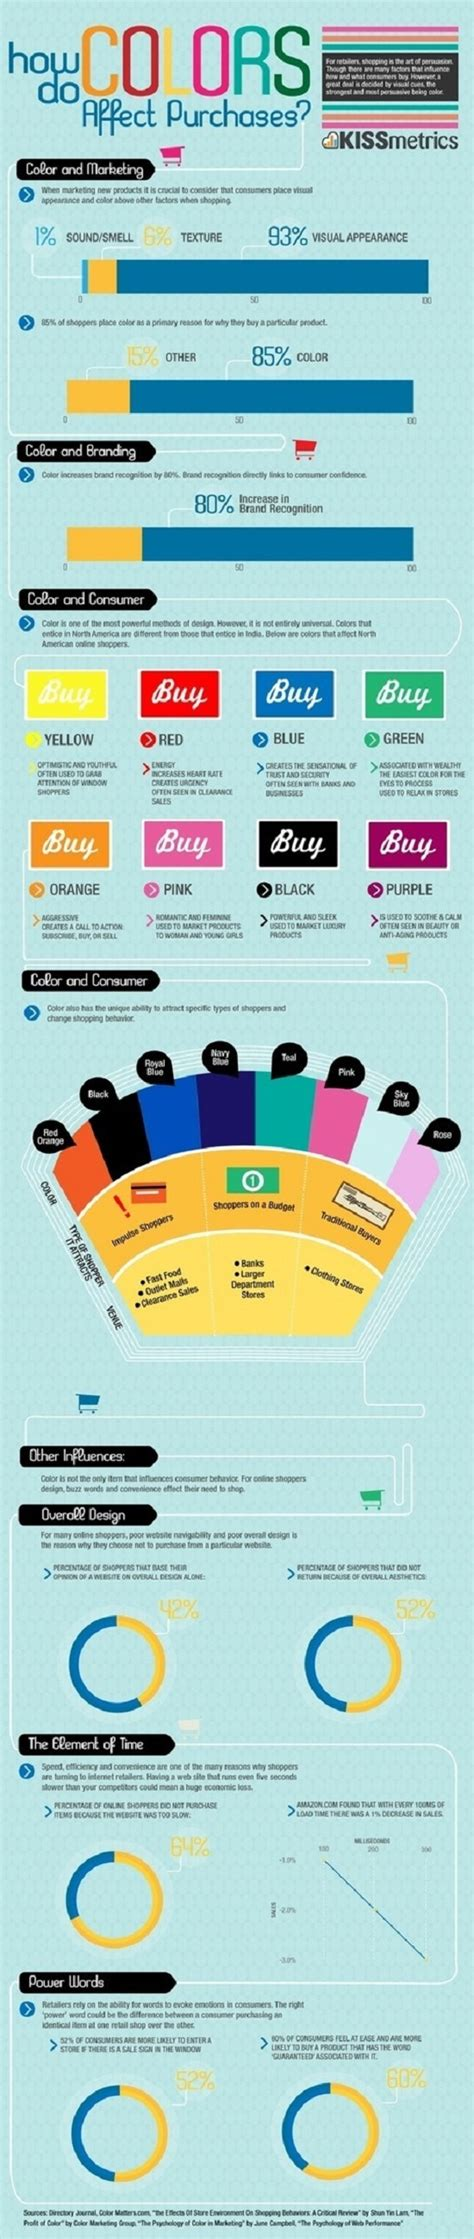 how colour affects us infographic colors effects on consumers